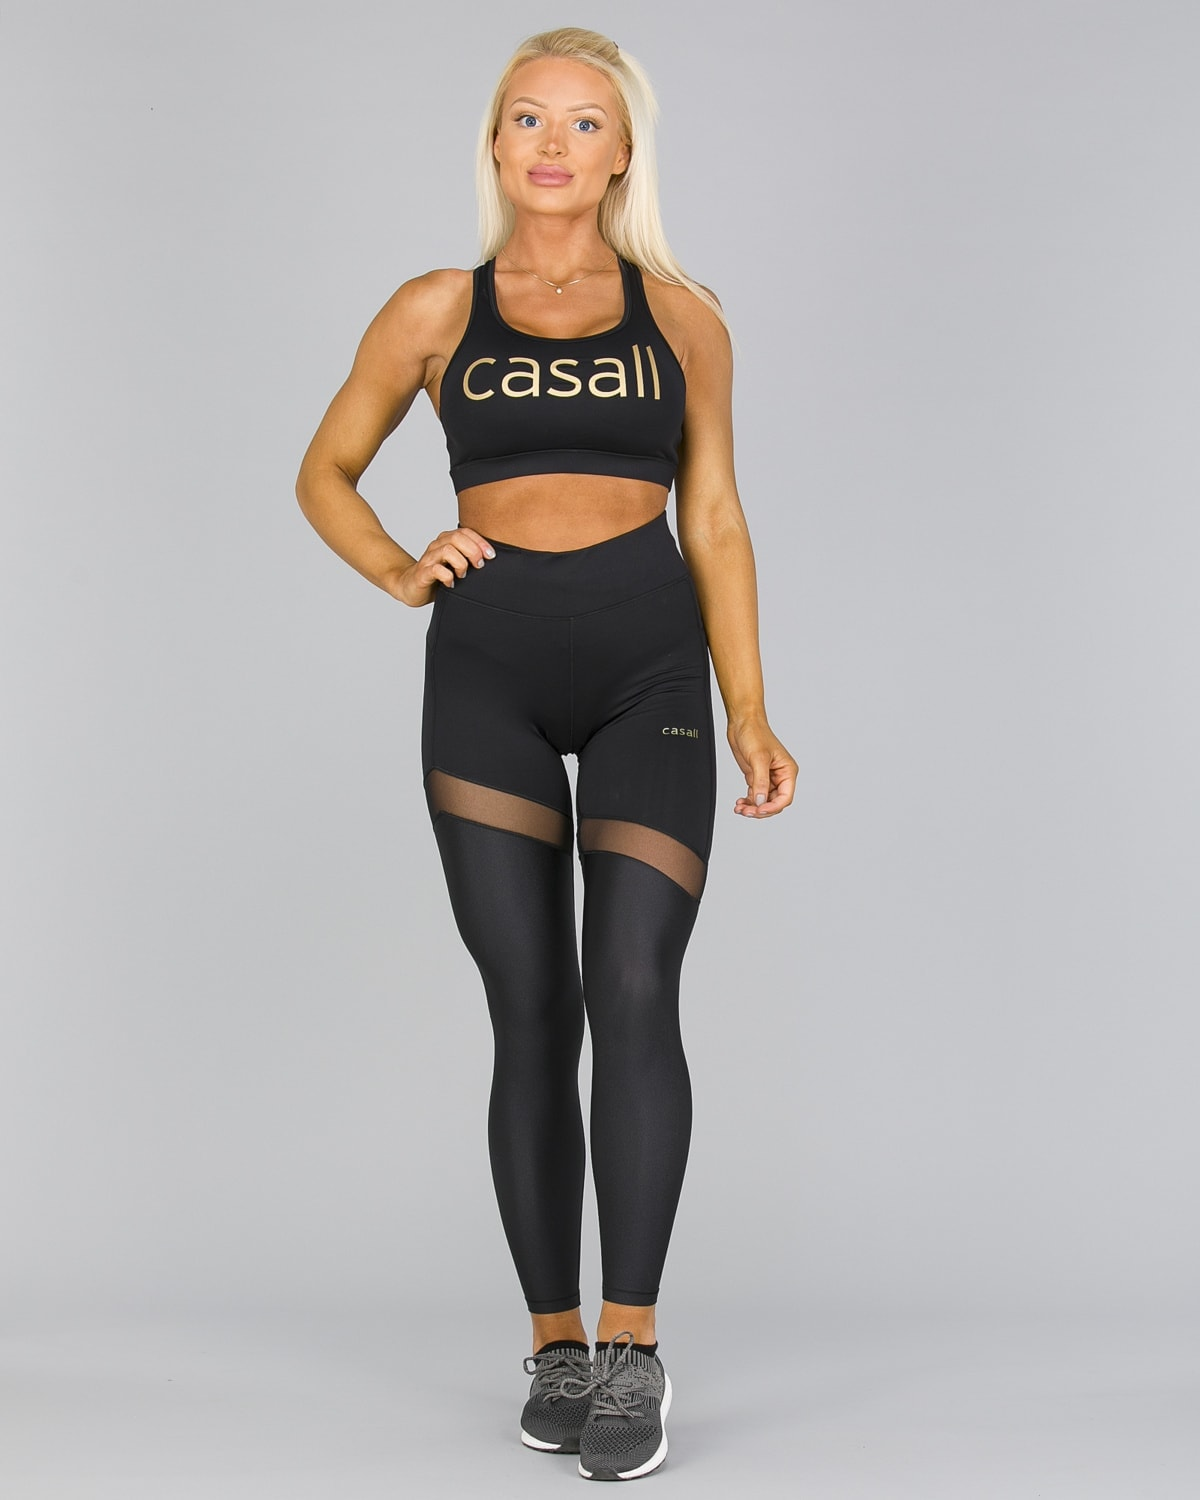 Casall Golden Lux 7:8 Tights5